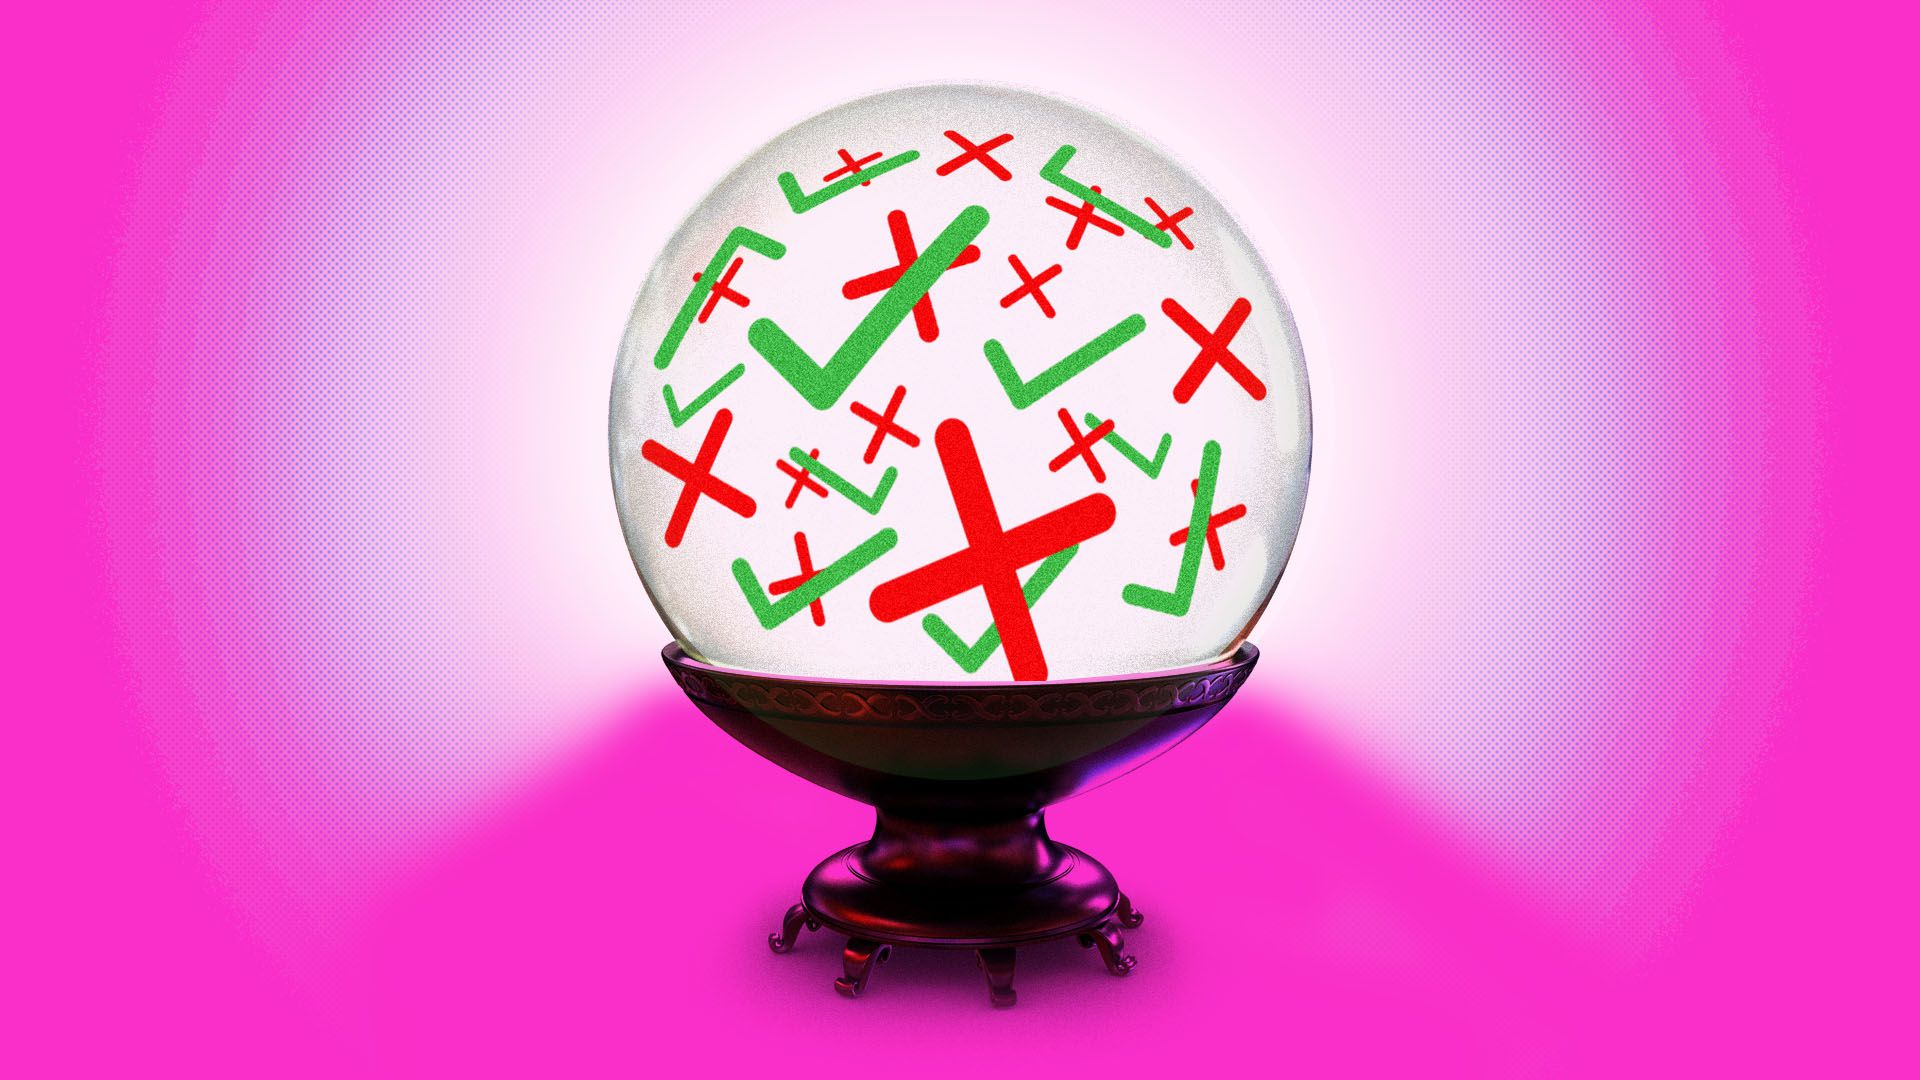 Illustration of a crystal ball with check marks and plus signs inside